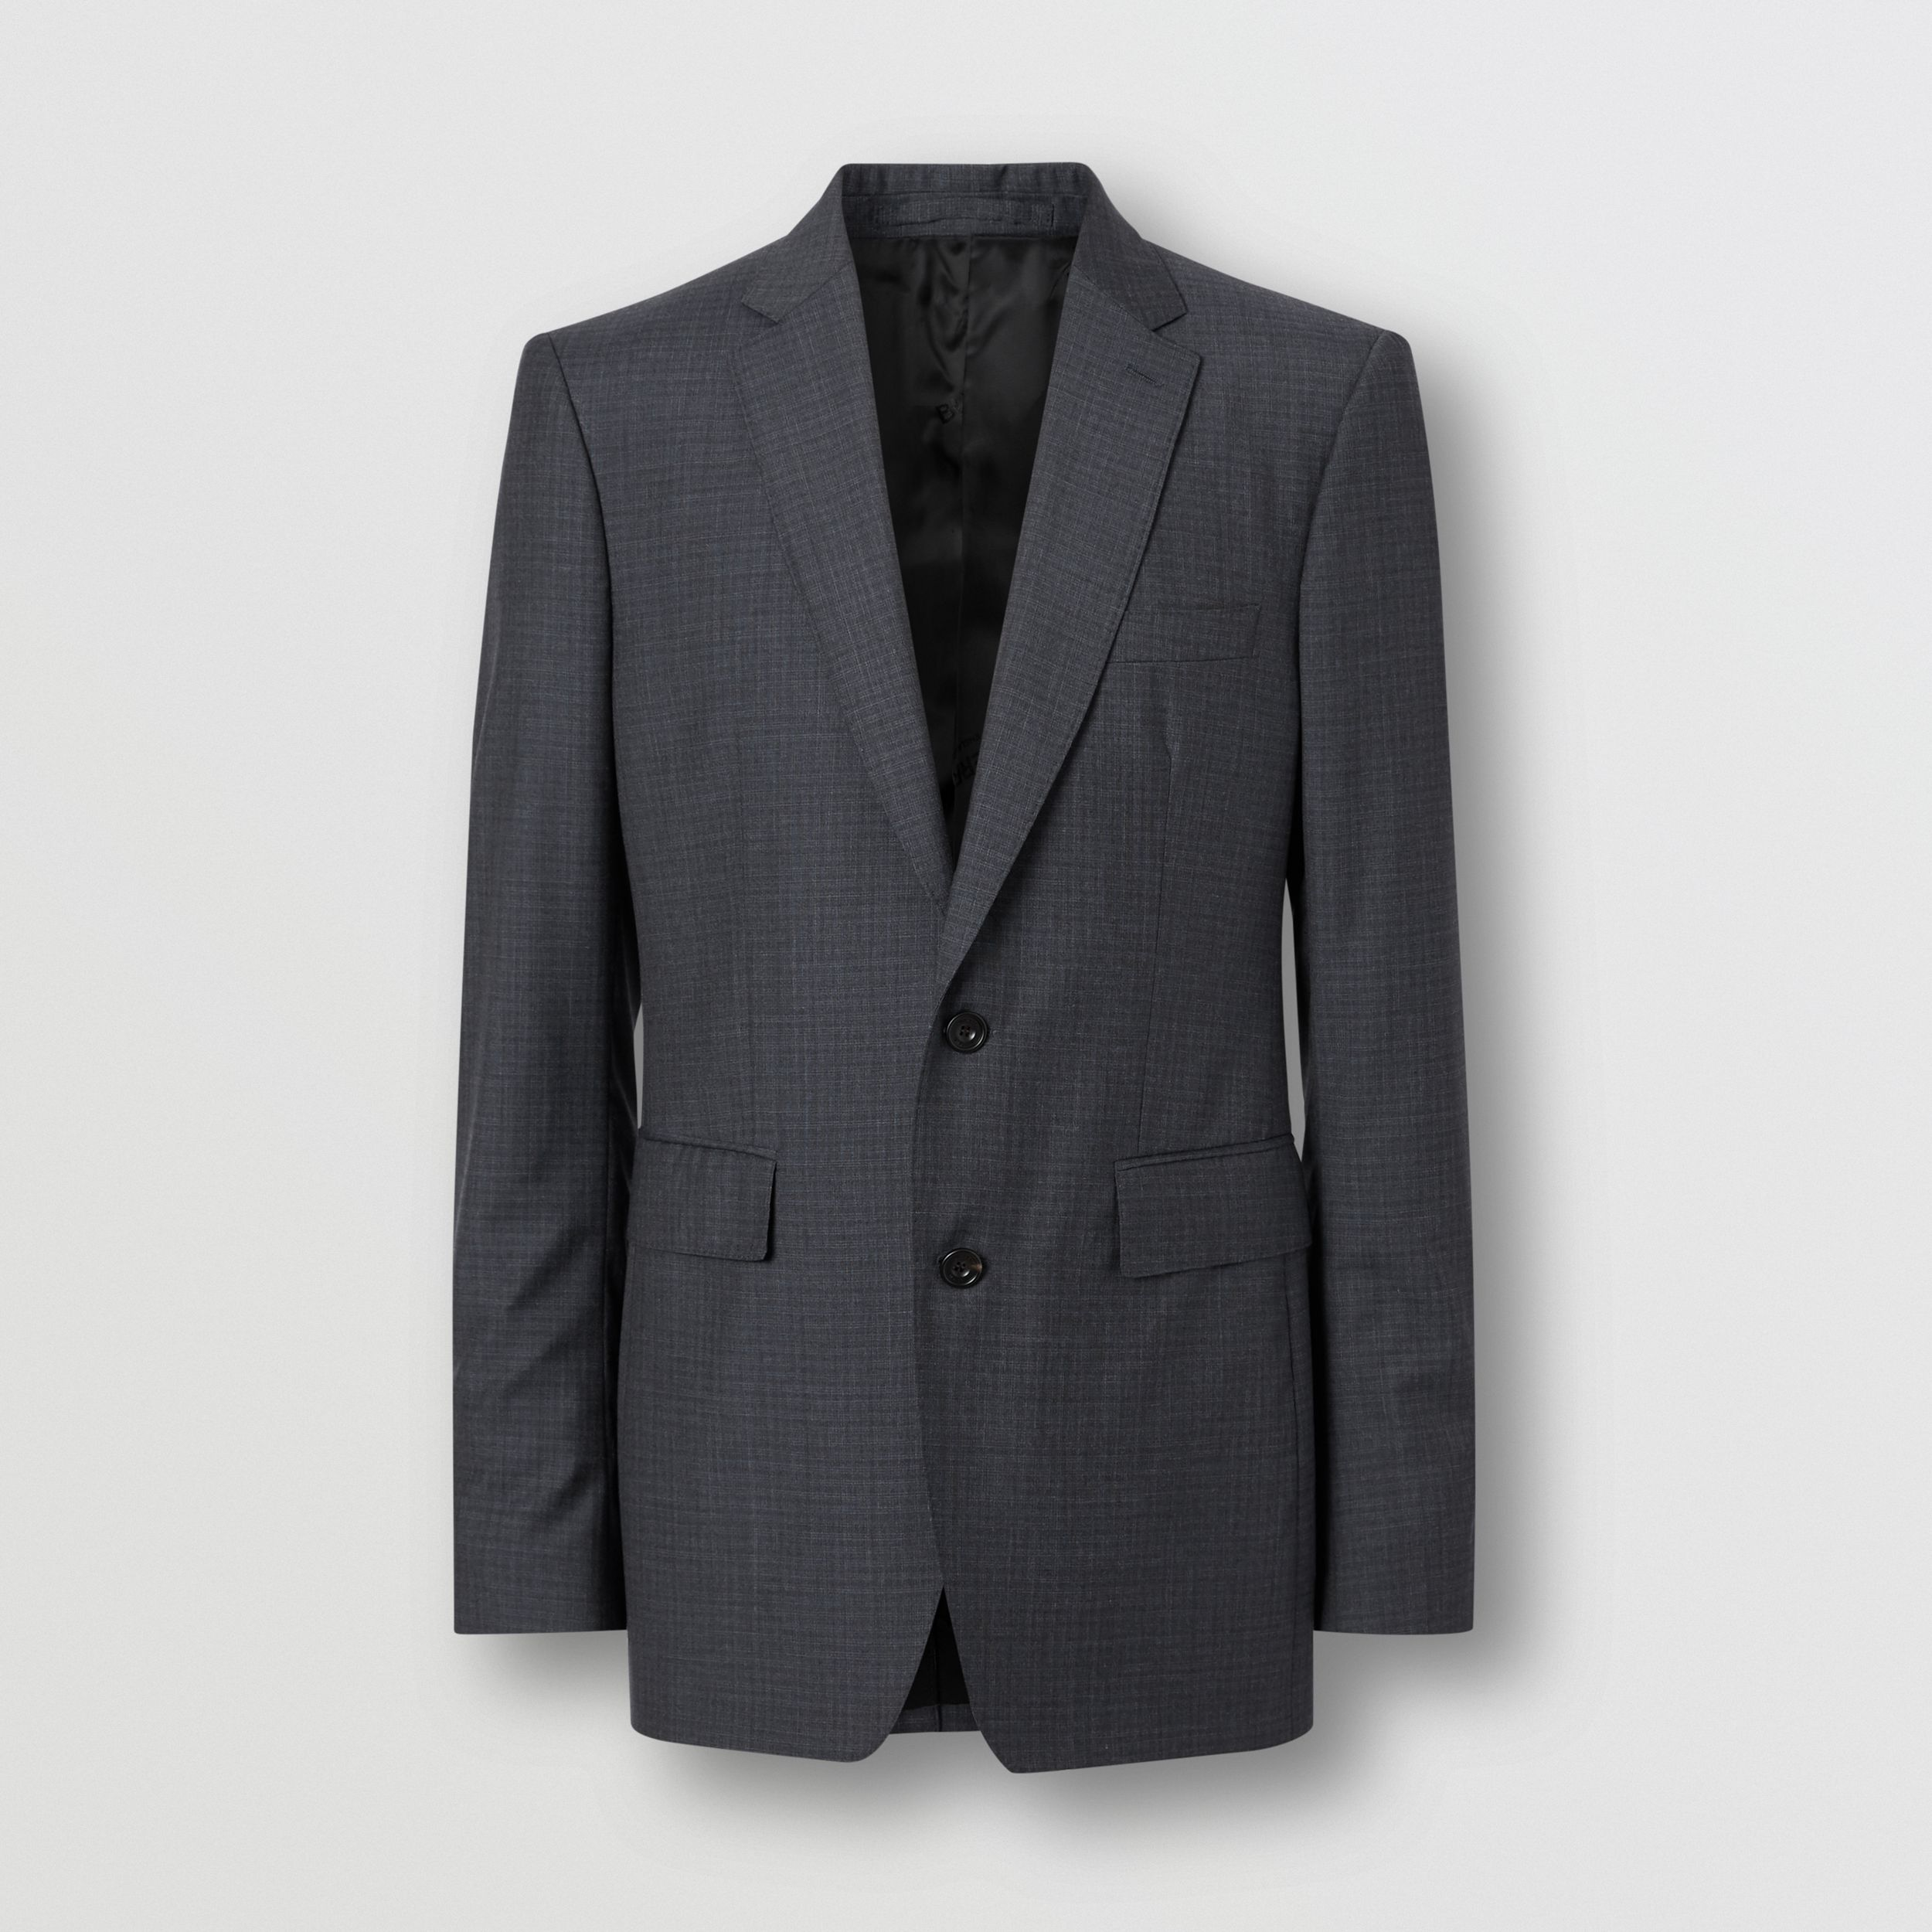 Classic Fit Check Wool Silk Three-piece Suit in Navy - Men | Burberry - 4